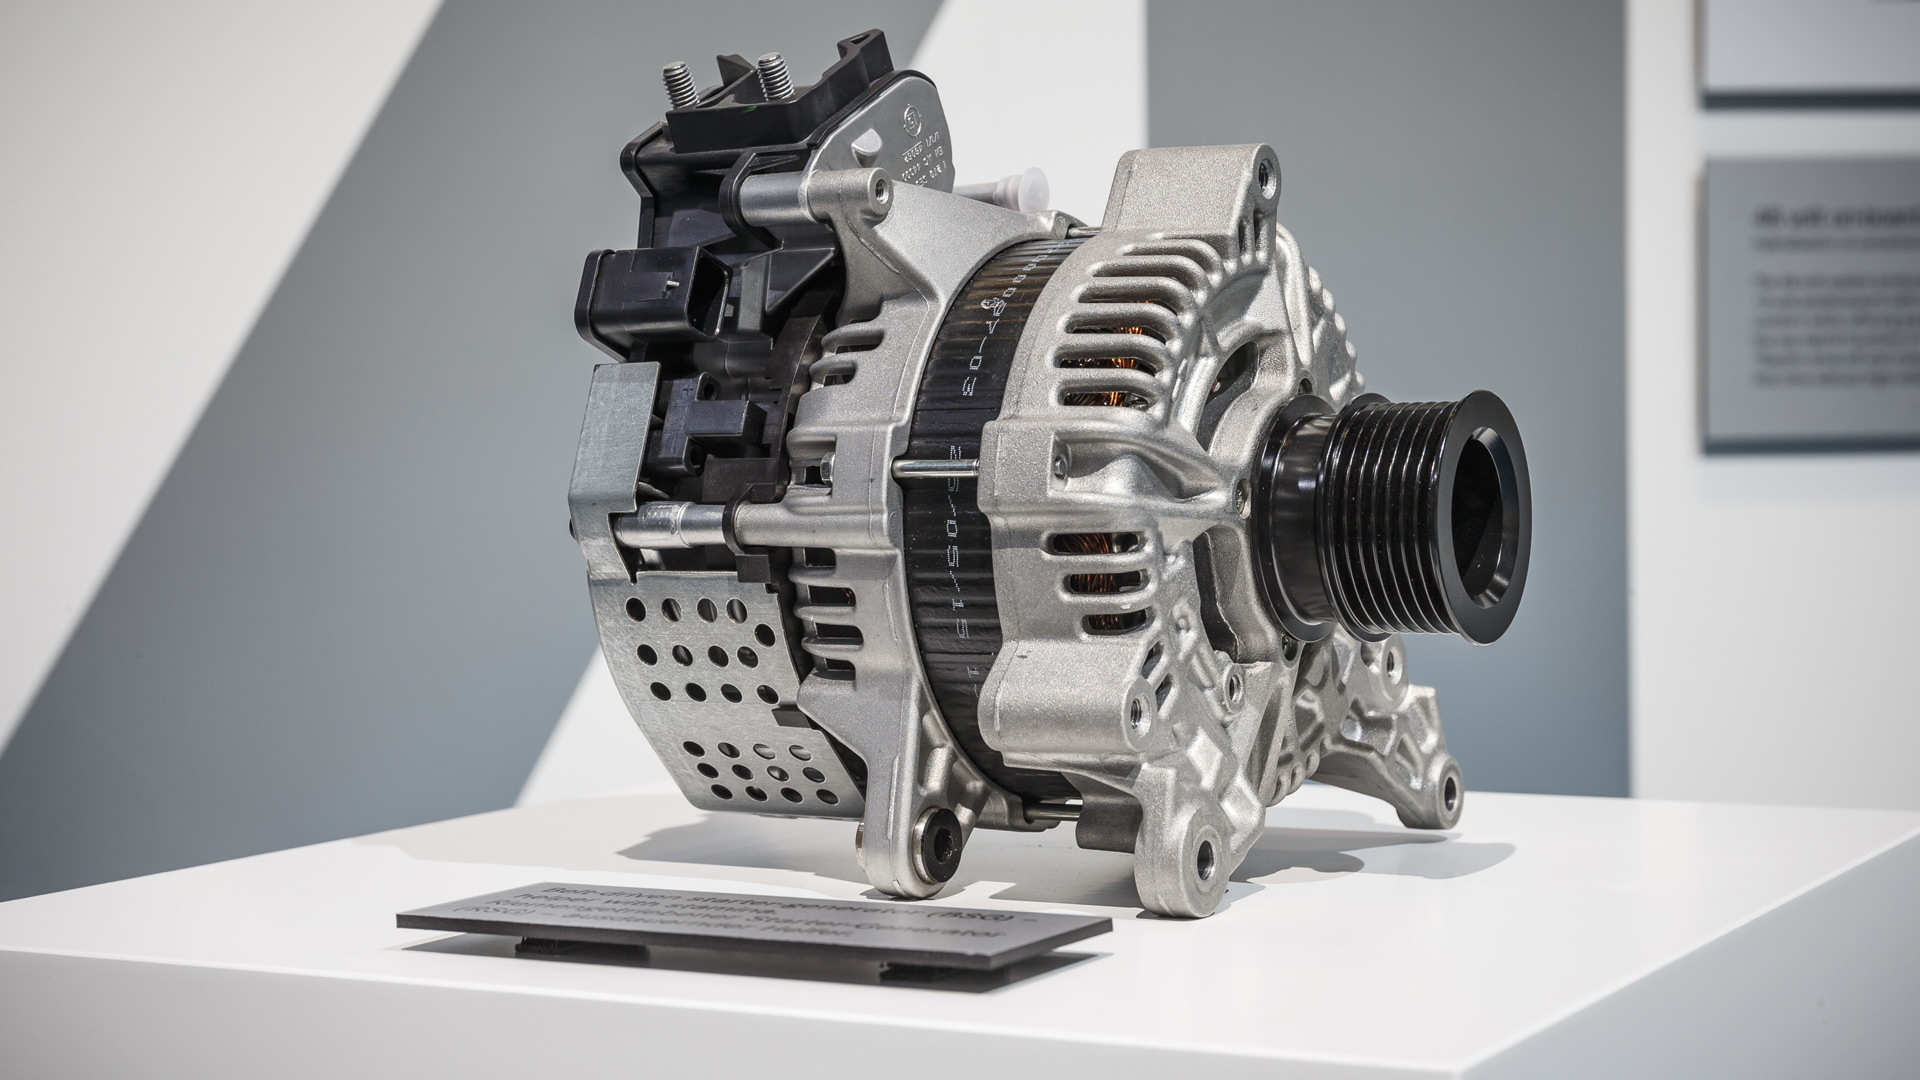 Mercedes-Benz belt-driven starter generator (RSG)